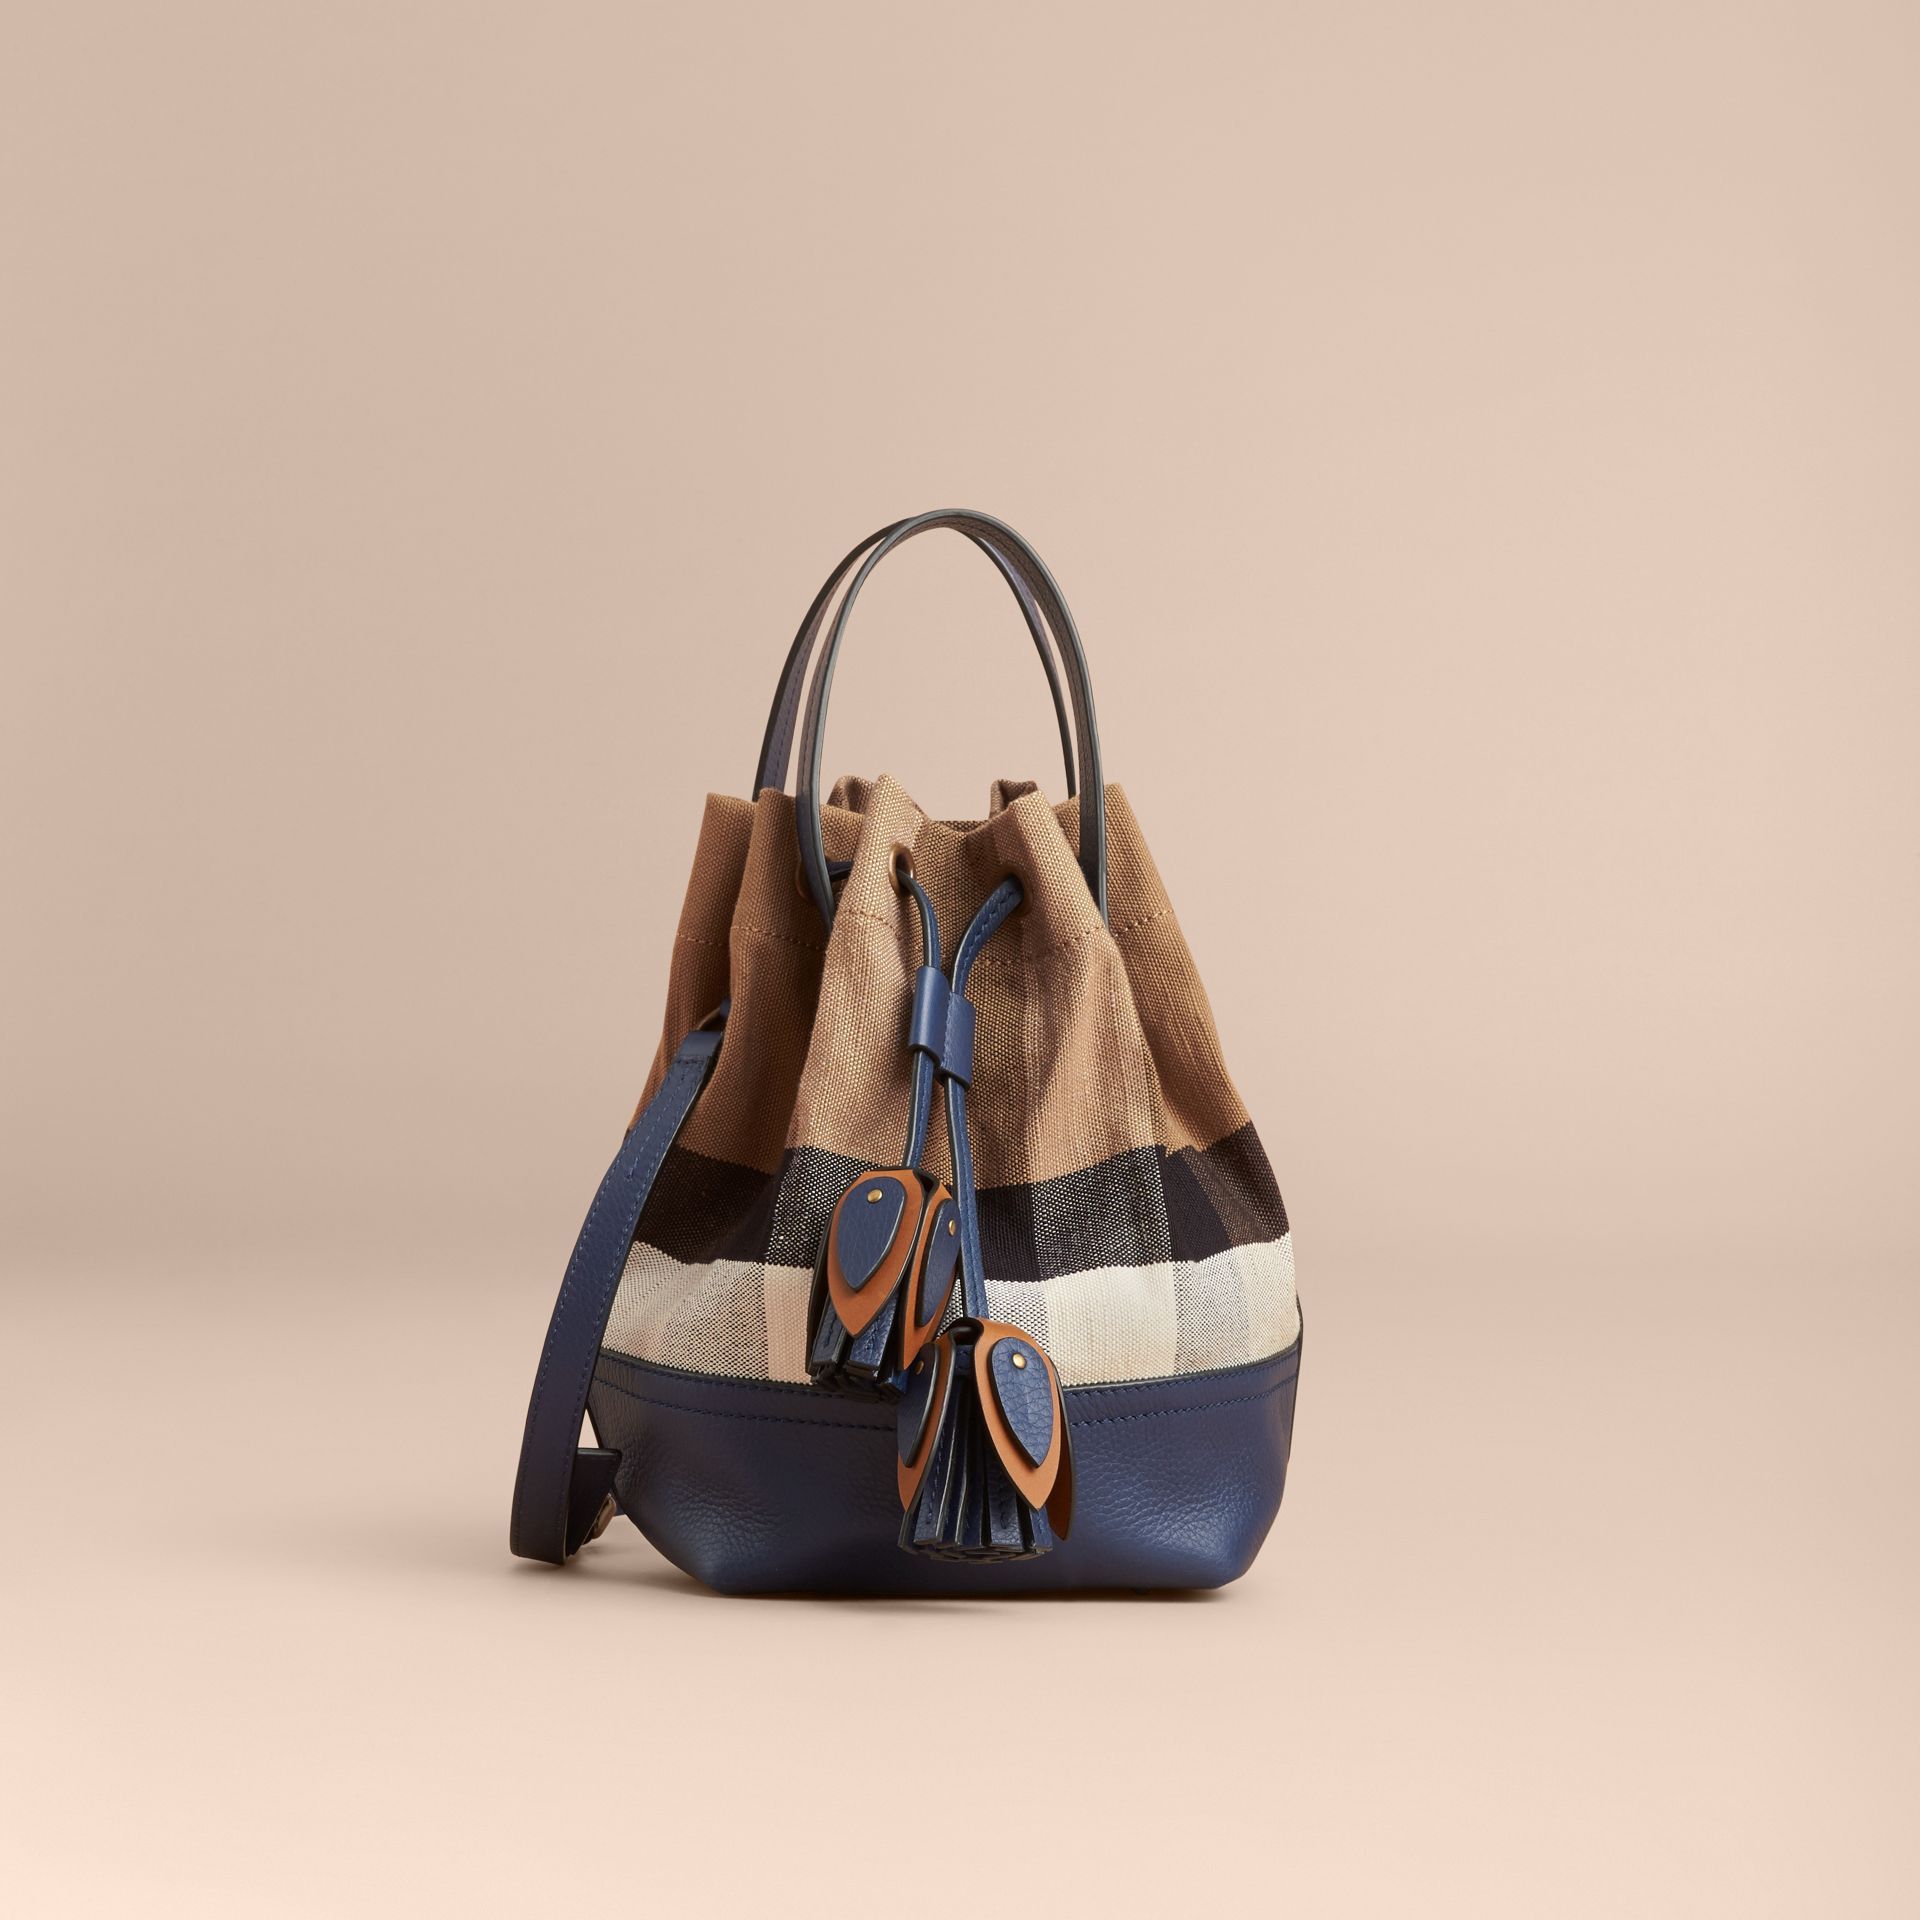 Small Canvas Check and Leather Bucket Bag in Brilliant Navy - Women | Burberry United States - gallery image 8